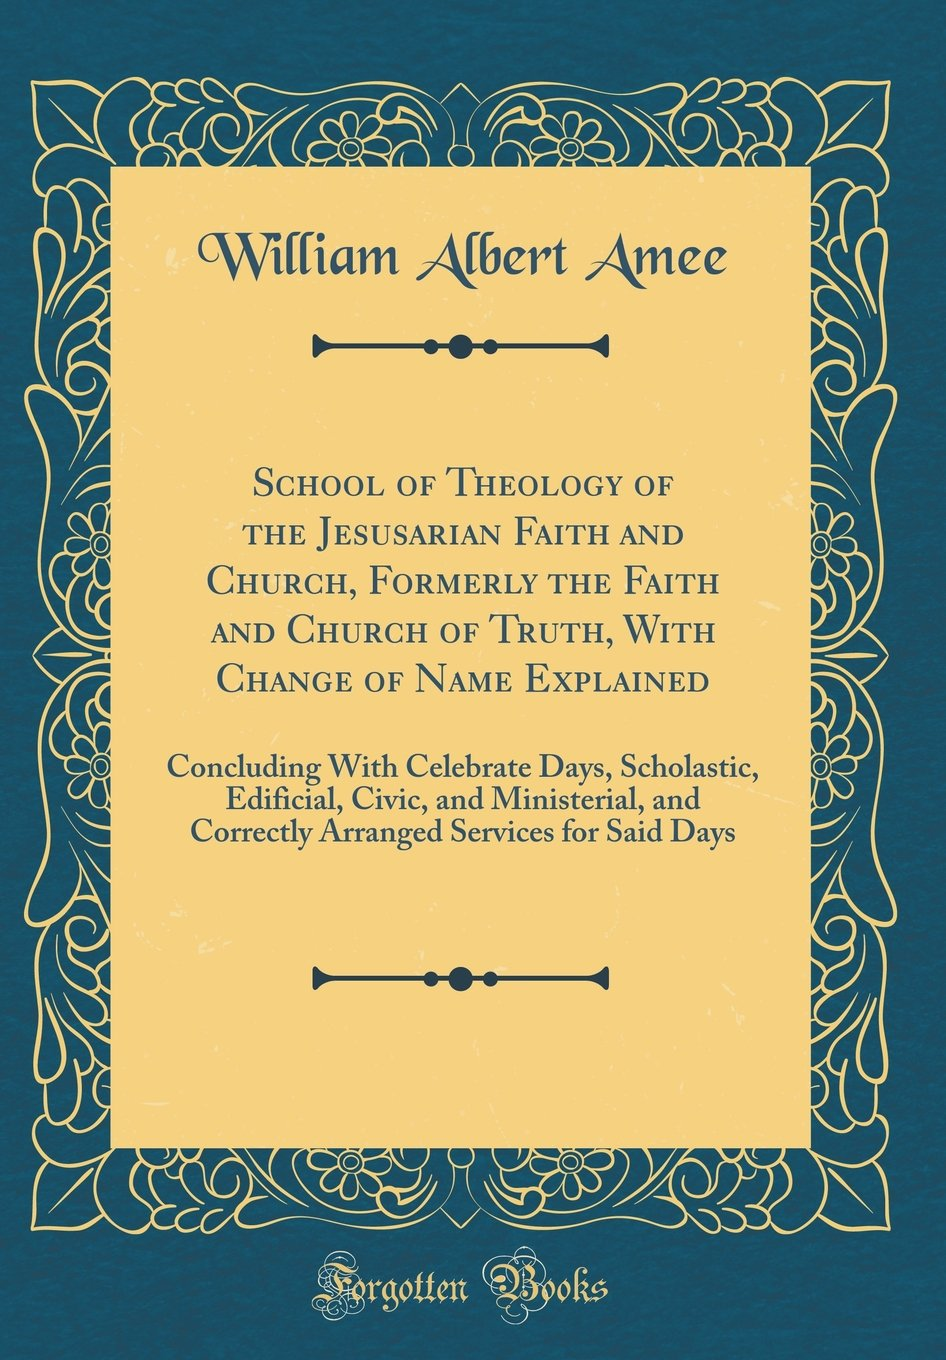 School of Theology of the Jesusarian Faith and Church, Formerly the Faith and Church of Truth, with Change of Name Explained: Concluding with ... and Correctly Arranged Services for Said Days pdf epub